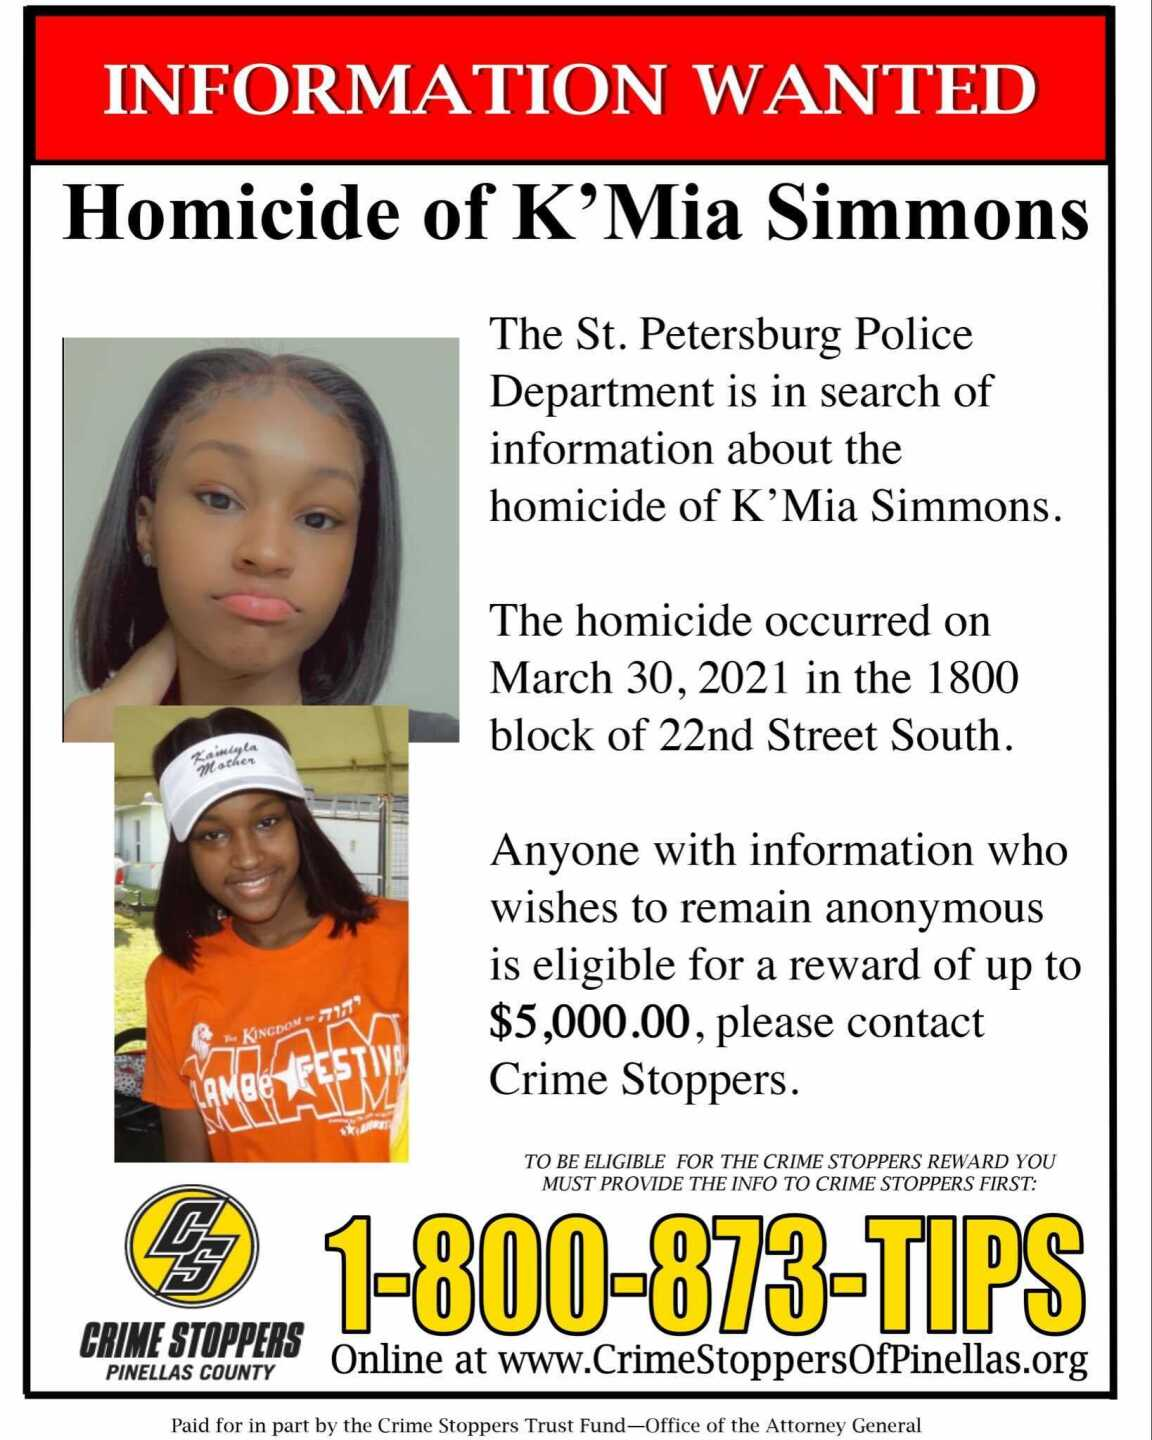 k'mia simmons flyer